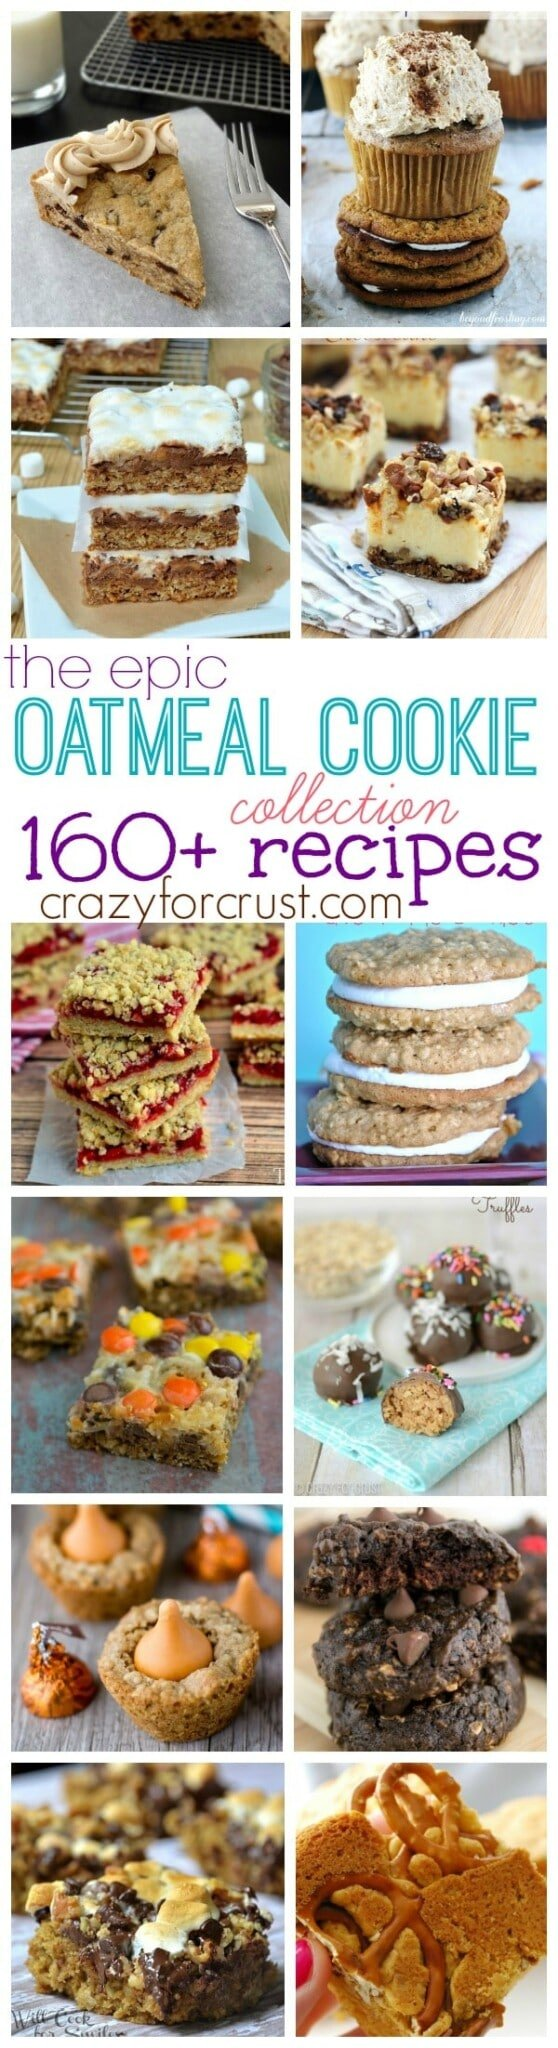 Photo collage showing oatmeal cookie recipes and a graphic that says Over 160 Oatmeal Cookie Recipes